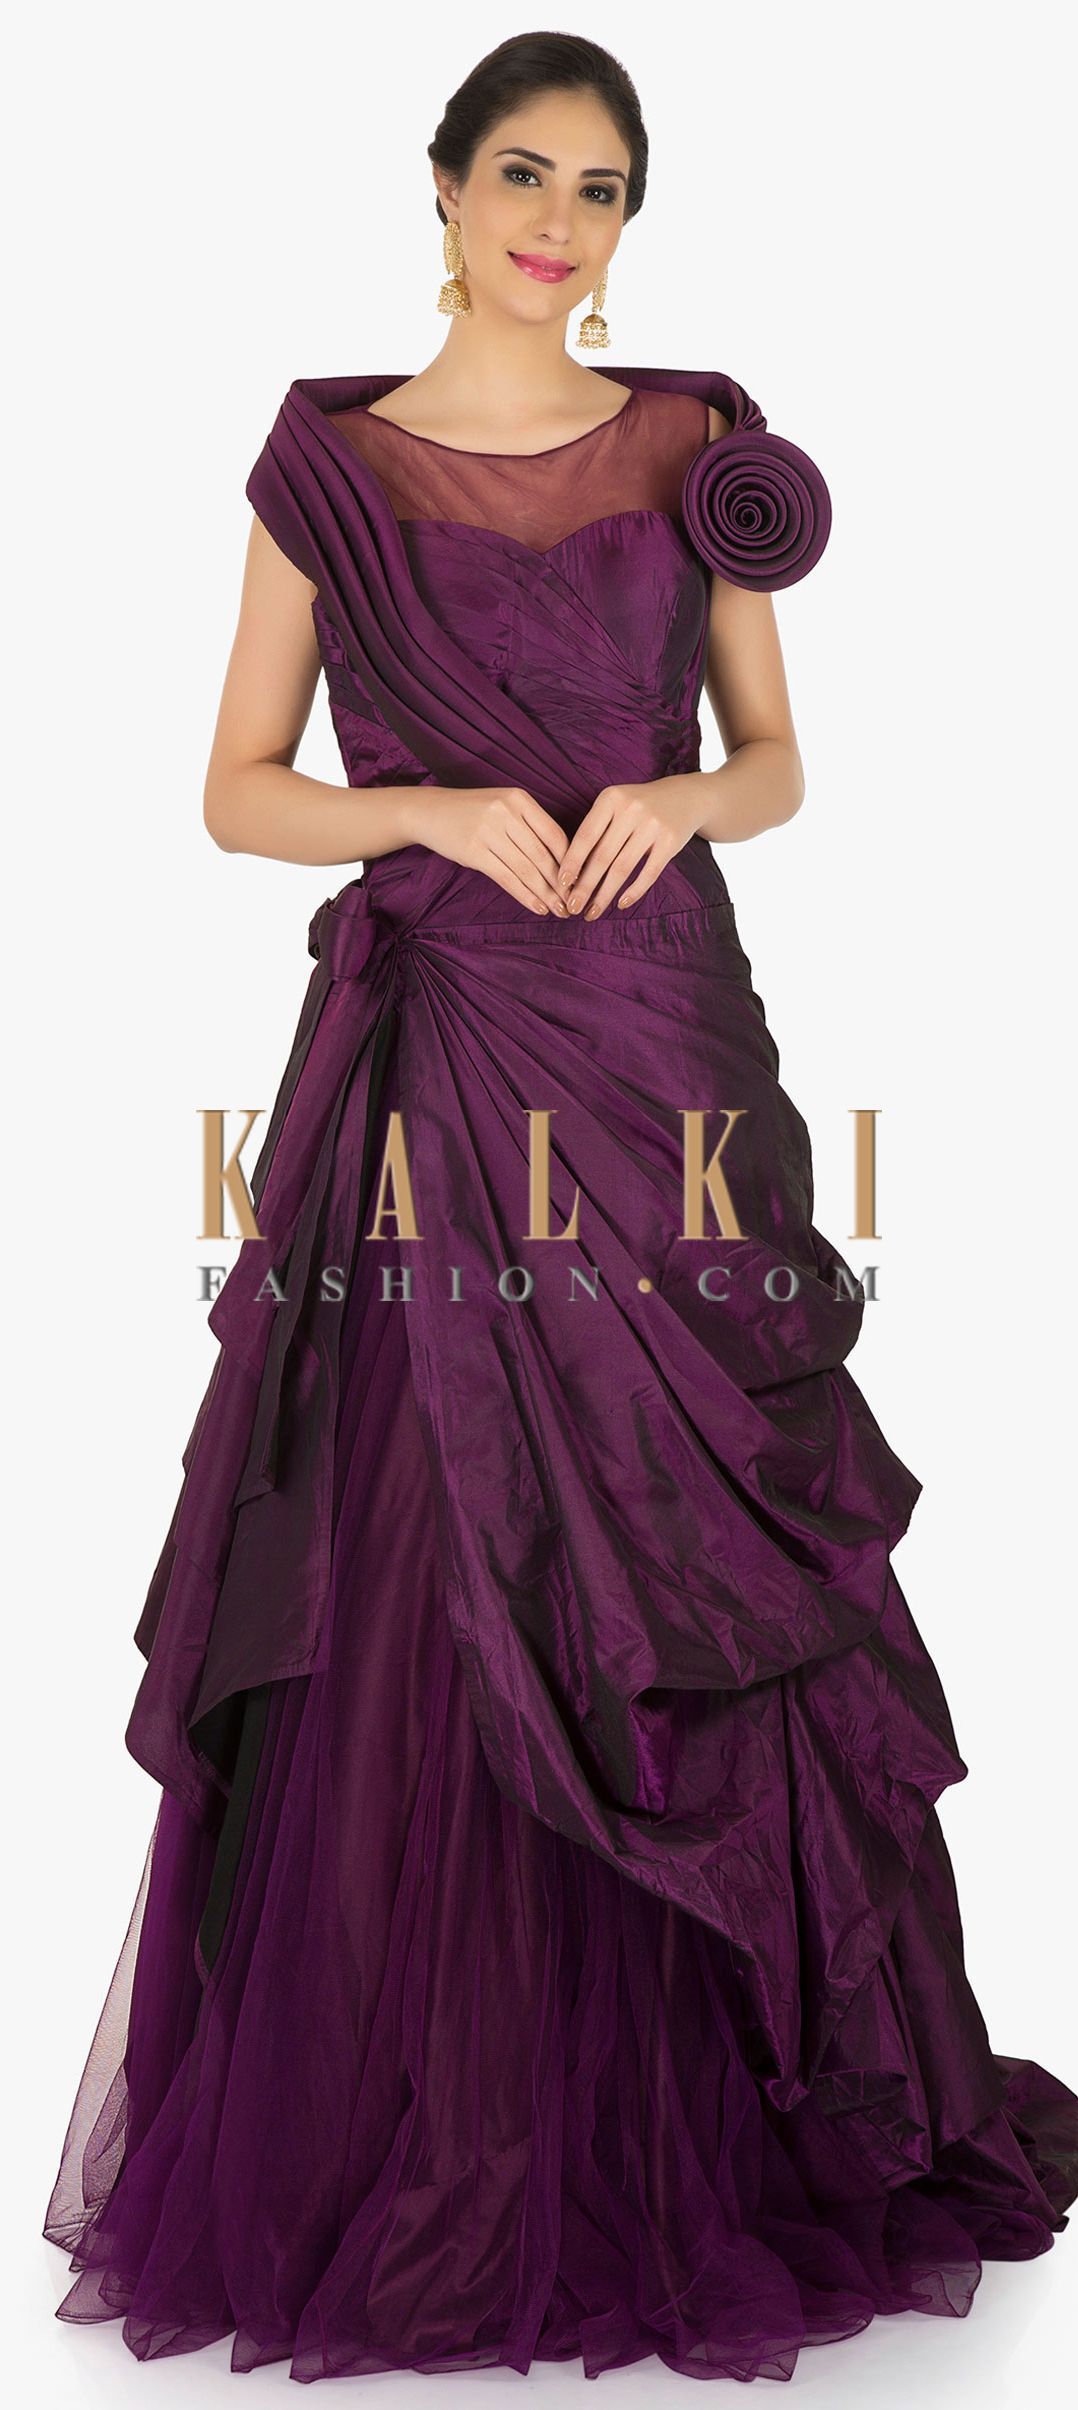 Buy Online from the link below. We ship worldwide (Free Shipping over  US 100) Click Anywhere to Tag Purple gown in satin silk displaying the rose  and bow ... f0ac5e28941b